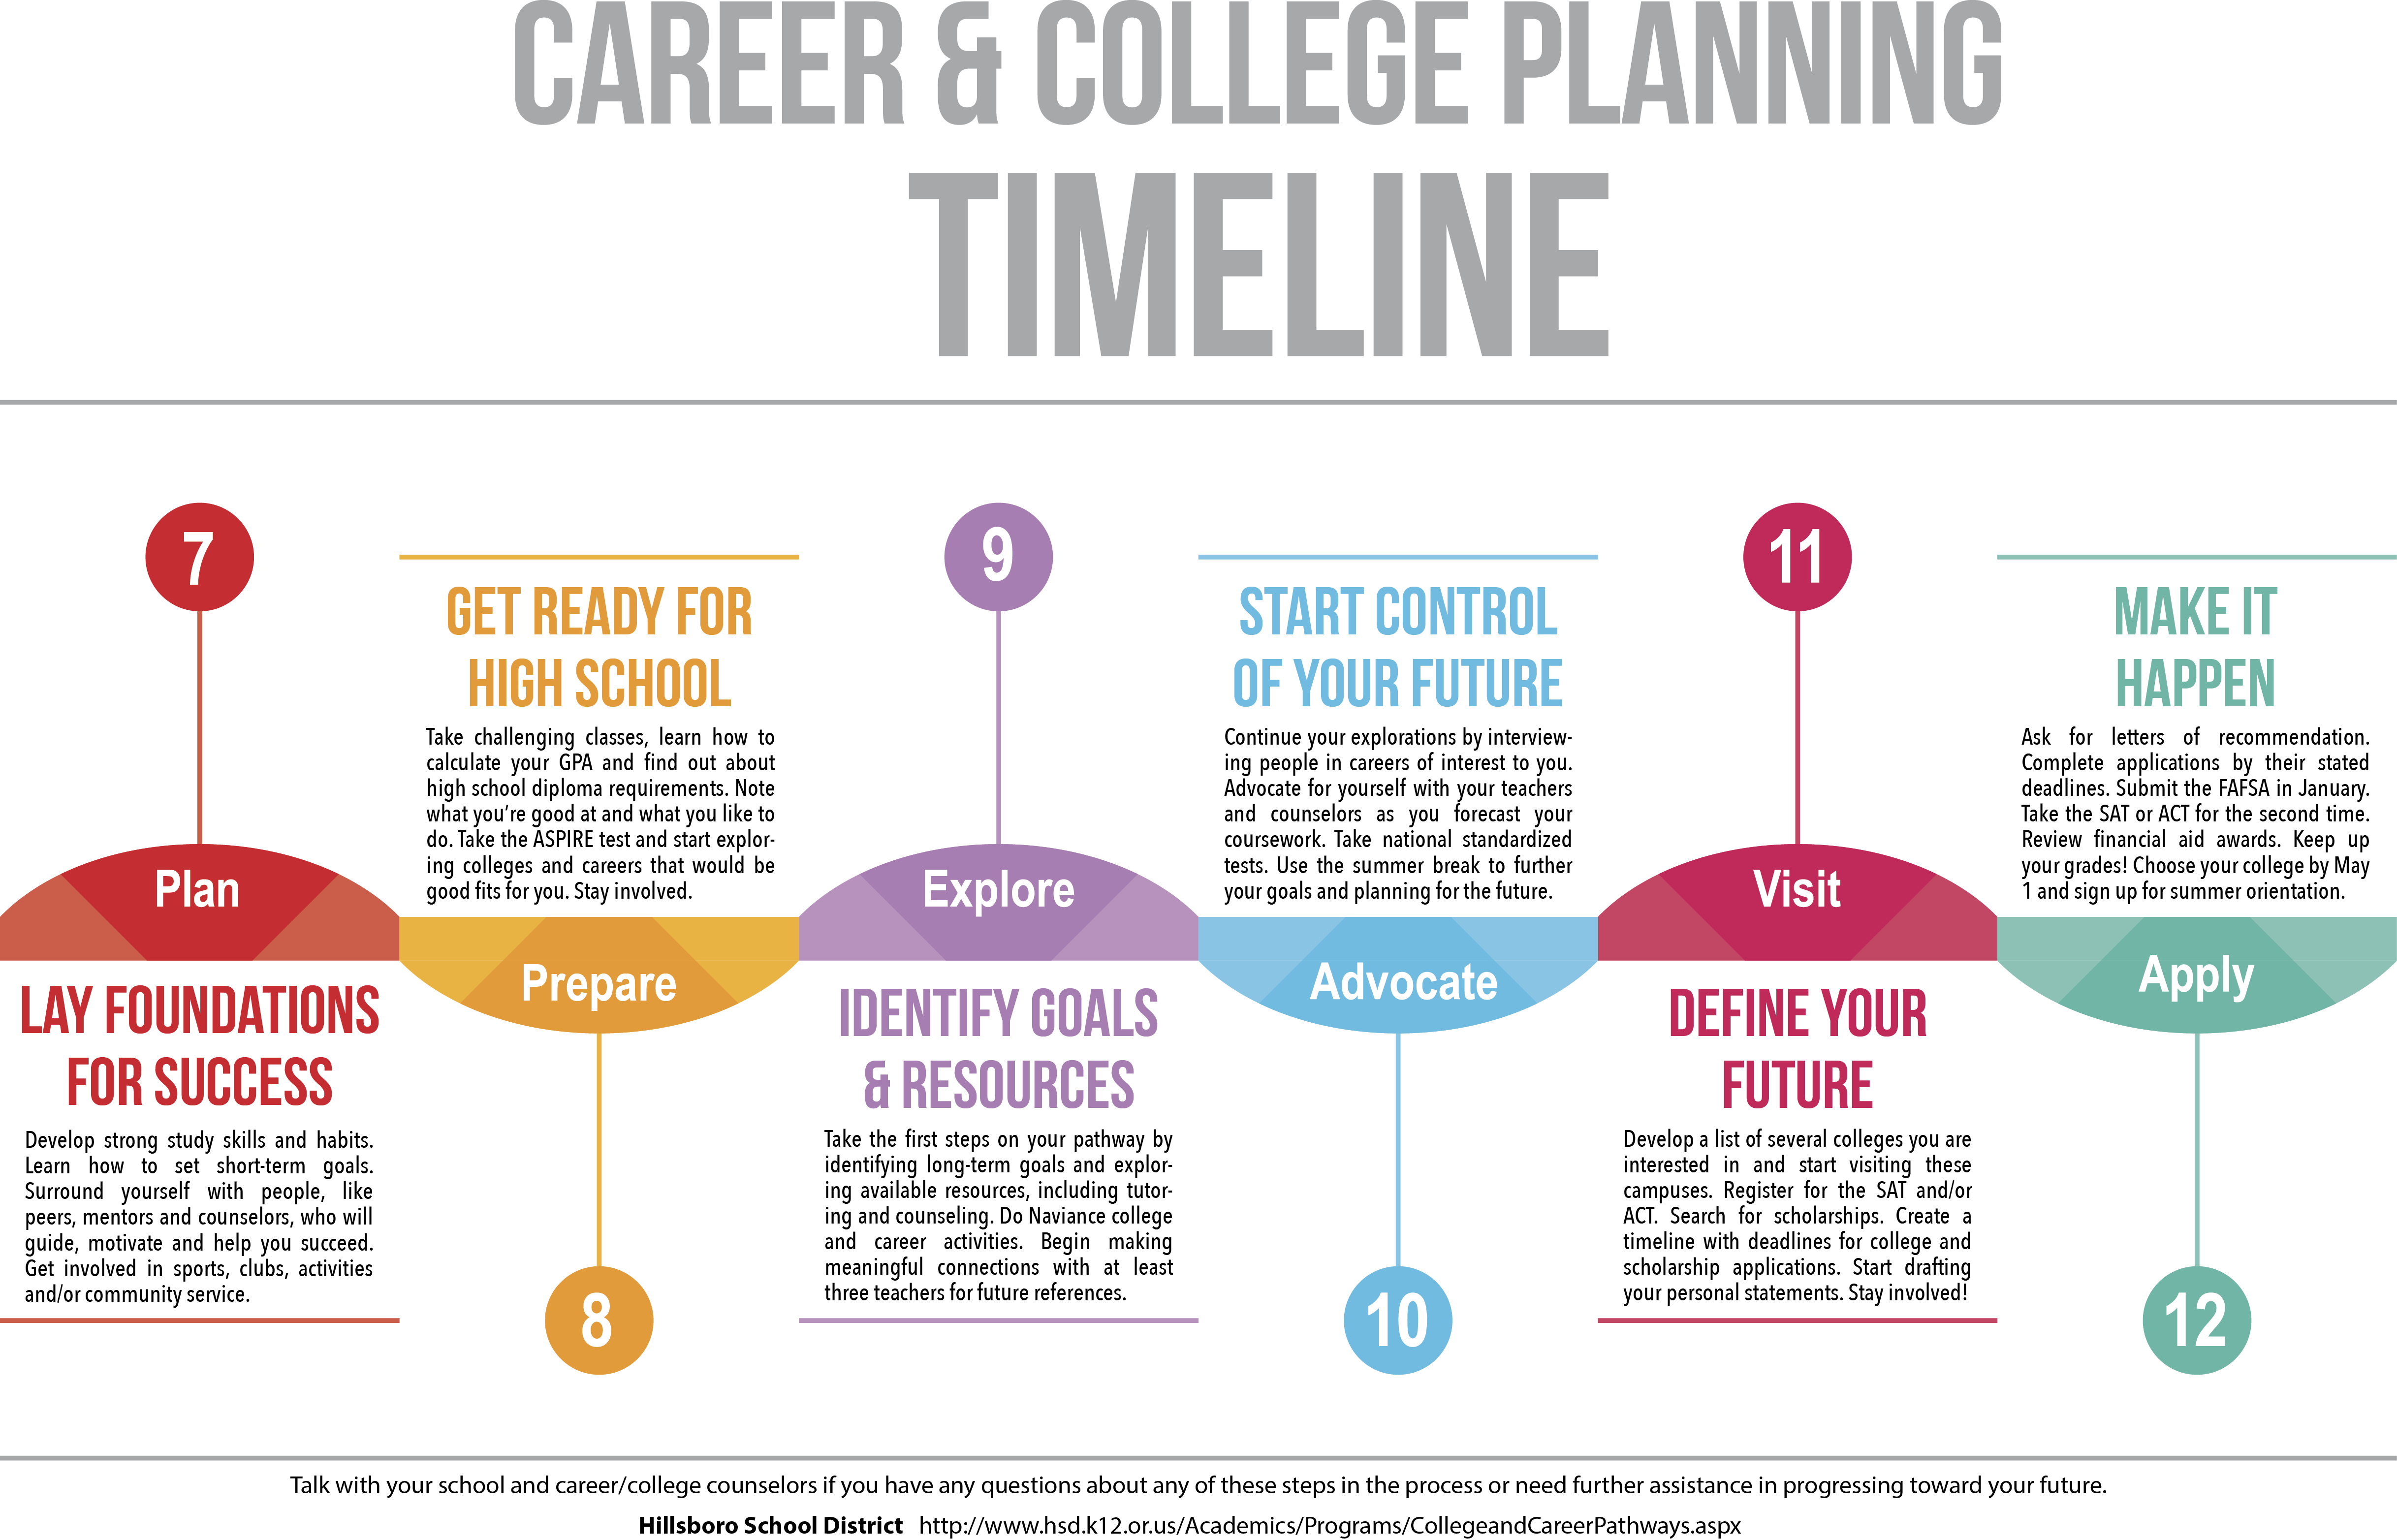 timeline graphic for career and college planning